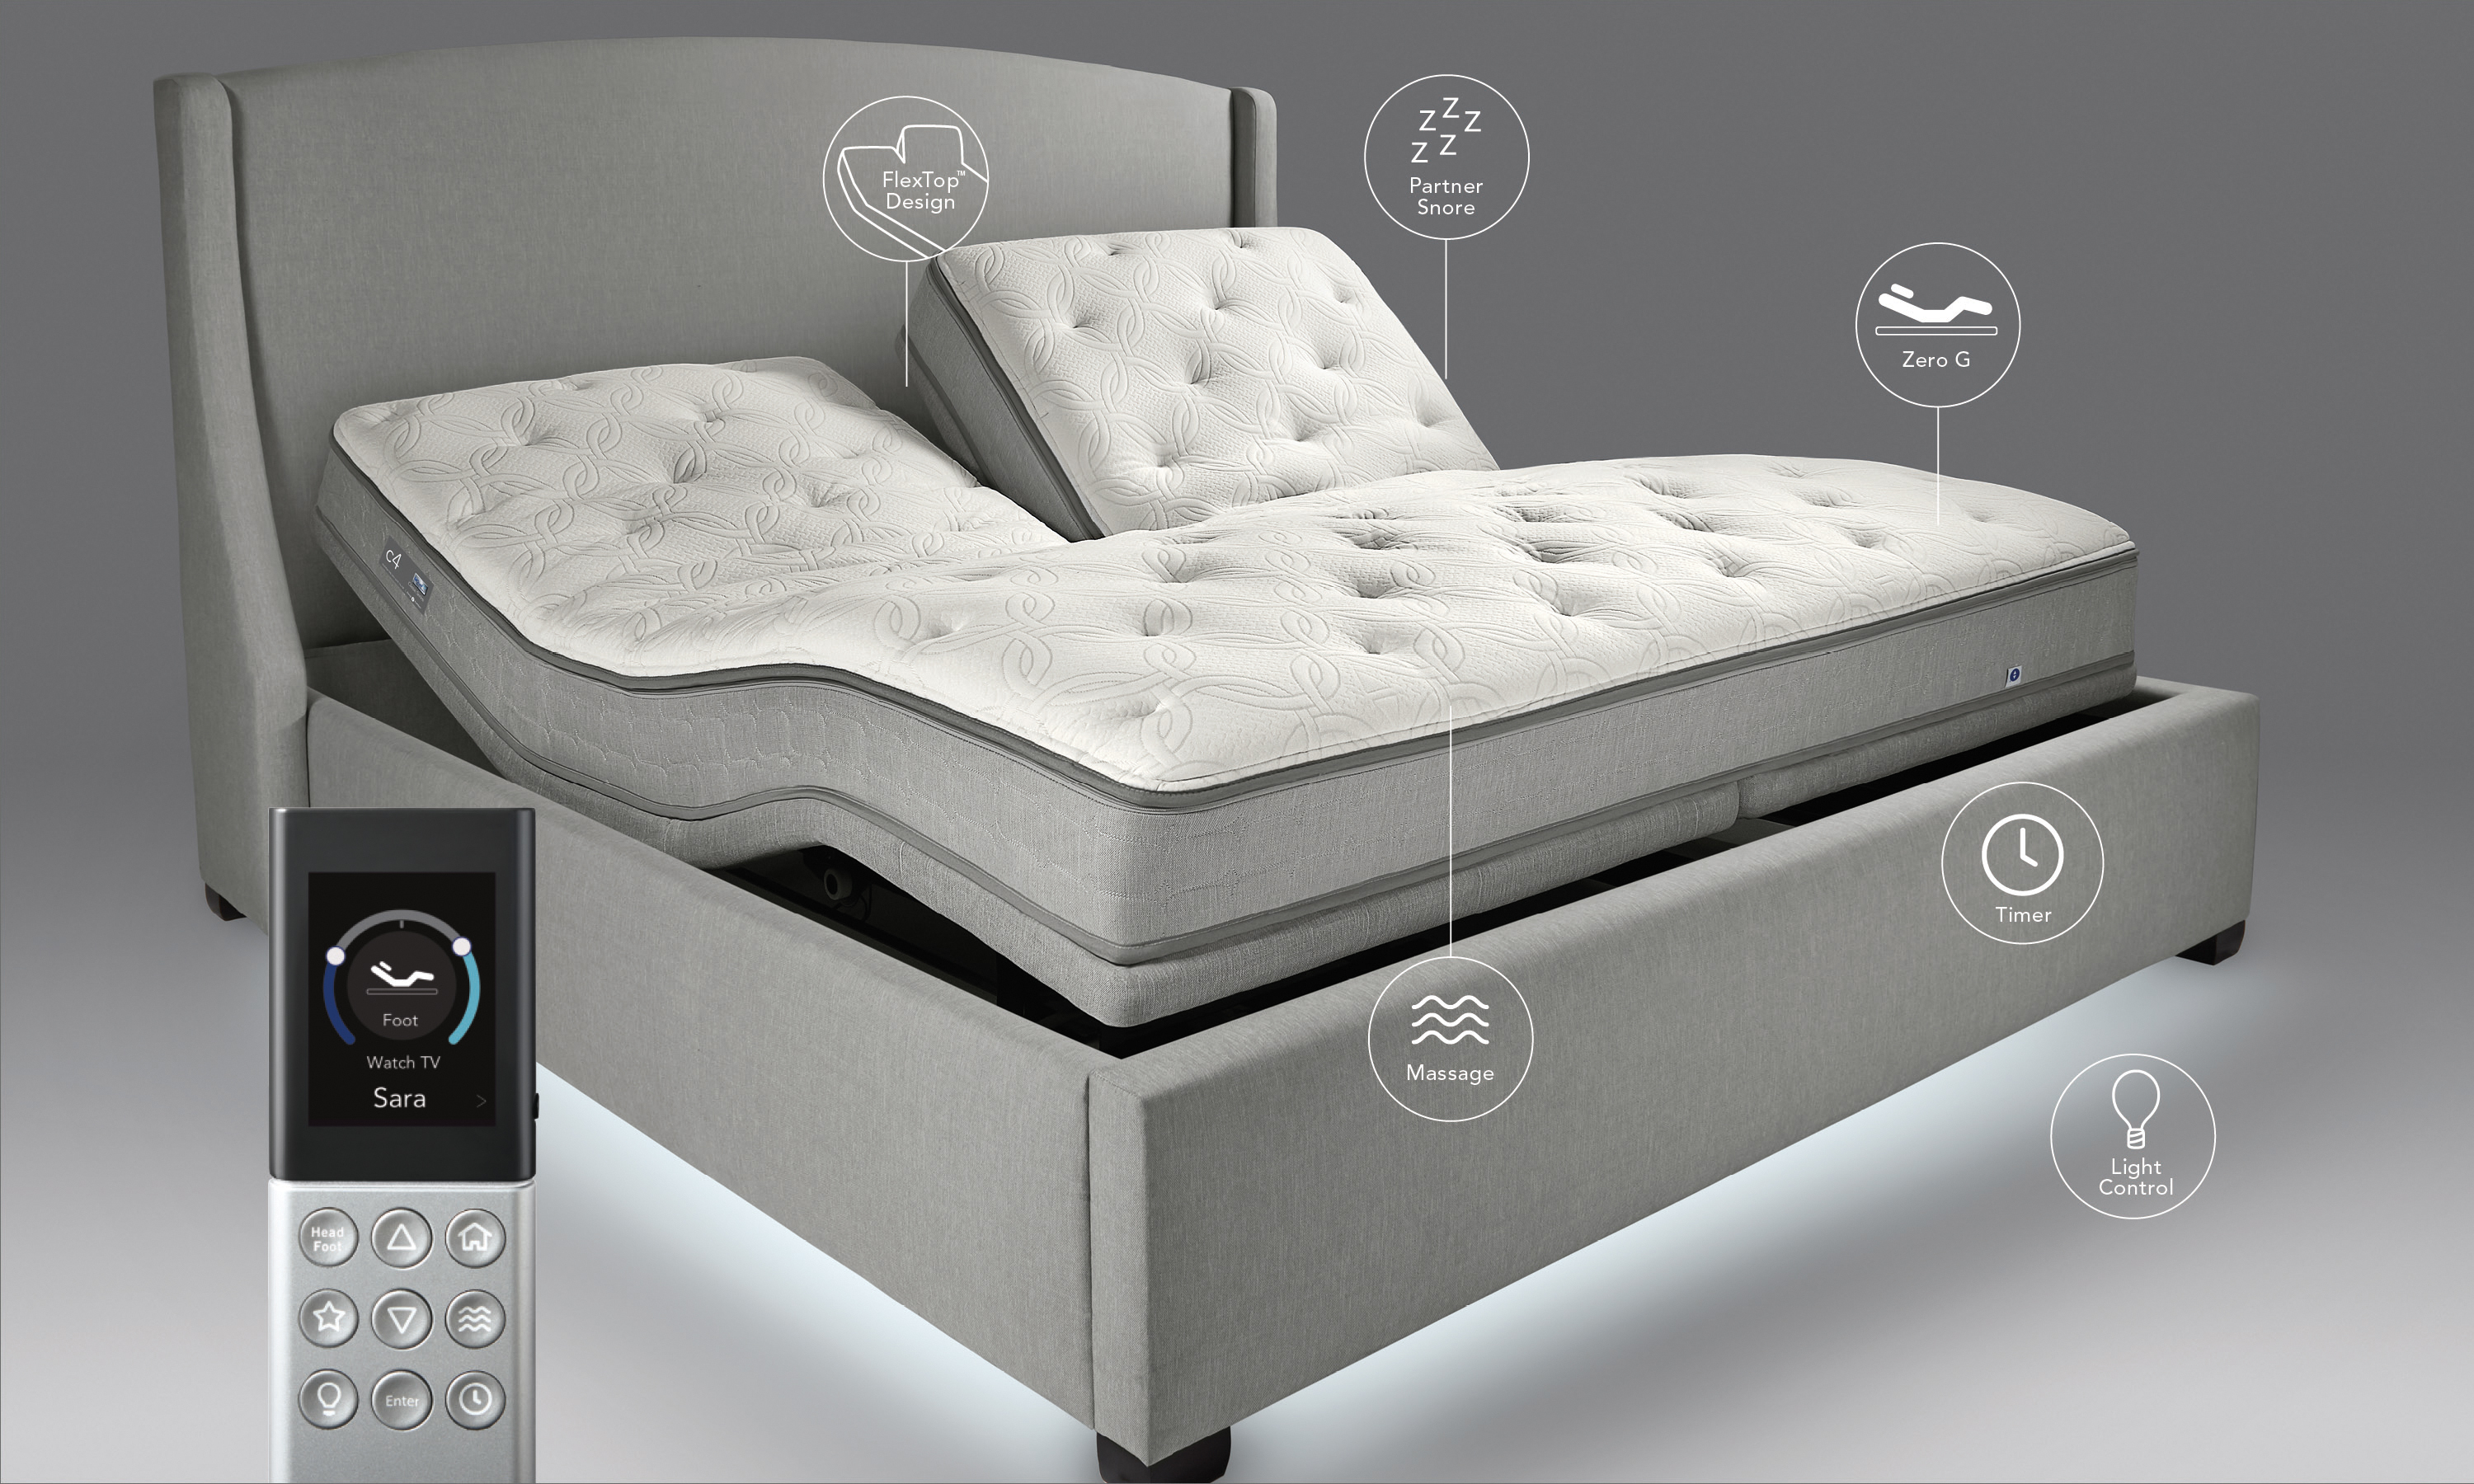 The Sleep Number c4 bed has superior comfort, support and pressure relief, and features Advanced DualAir technology that offers individual comfort and support on each side of the bed; an Edge-to-Edge chamber design, which extends adjustable-air support to the outer mattress edges; and a 3-zone comfort layer that provides soft support, and contours and cushions the head, back and hips for improved comfort. Pictured: Sleep Number c4 mattress with a FlexTop design and FlexFit 3 adjustable base (Photo: Sleep Number)